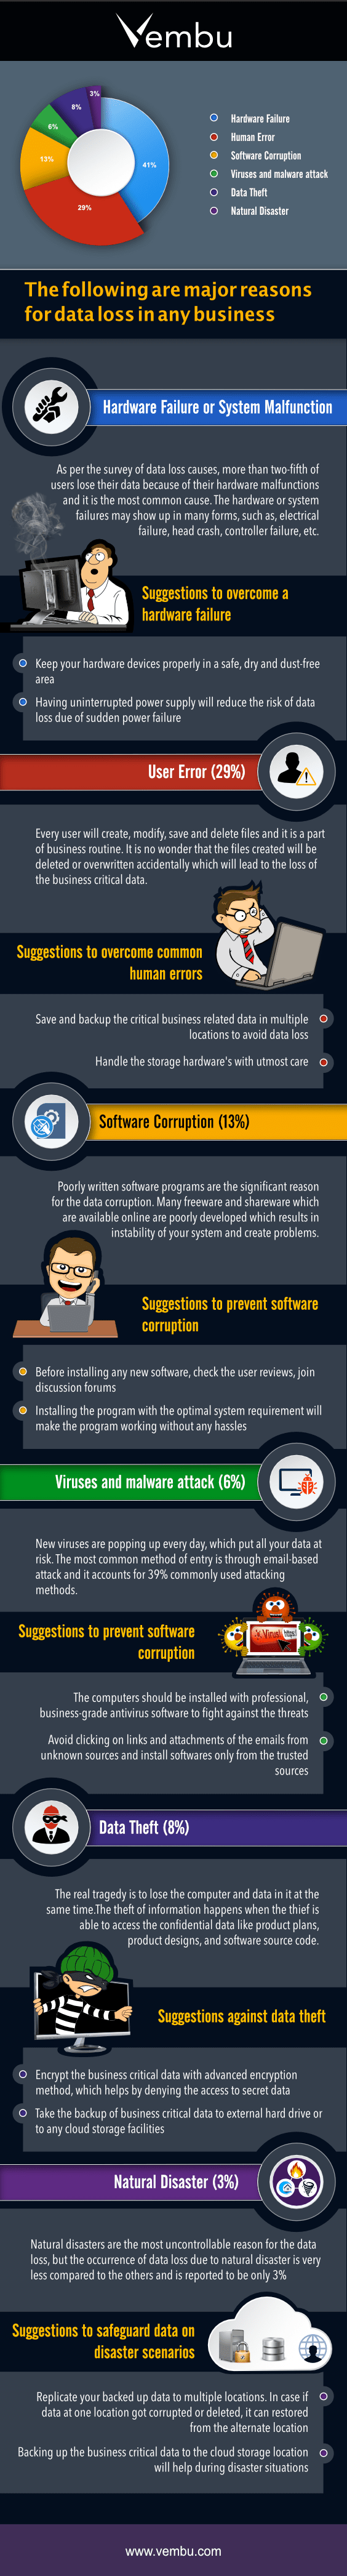 Data Loss Infographic